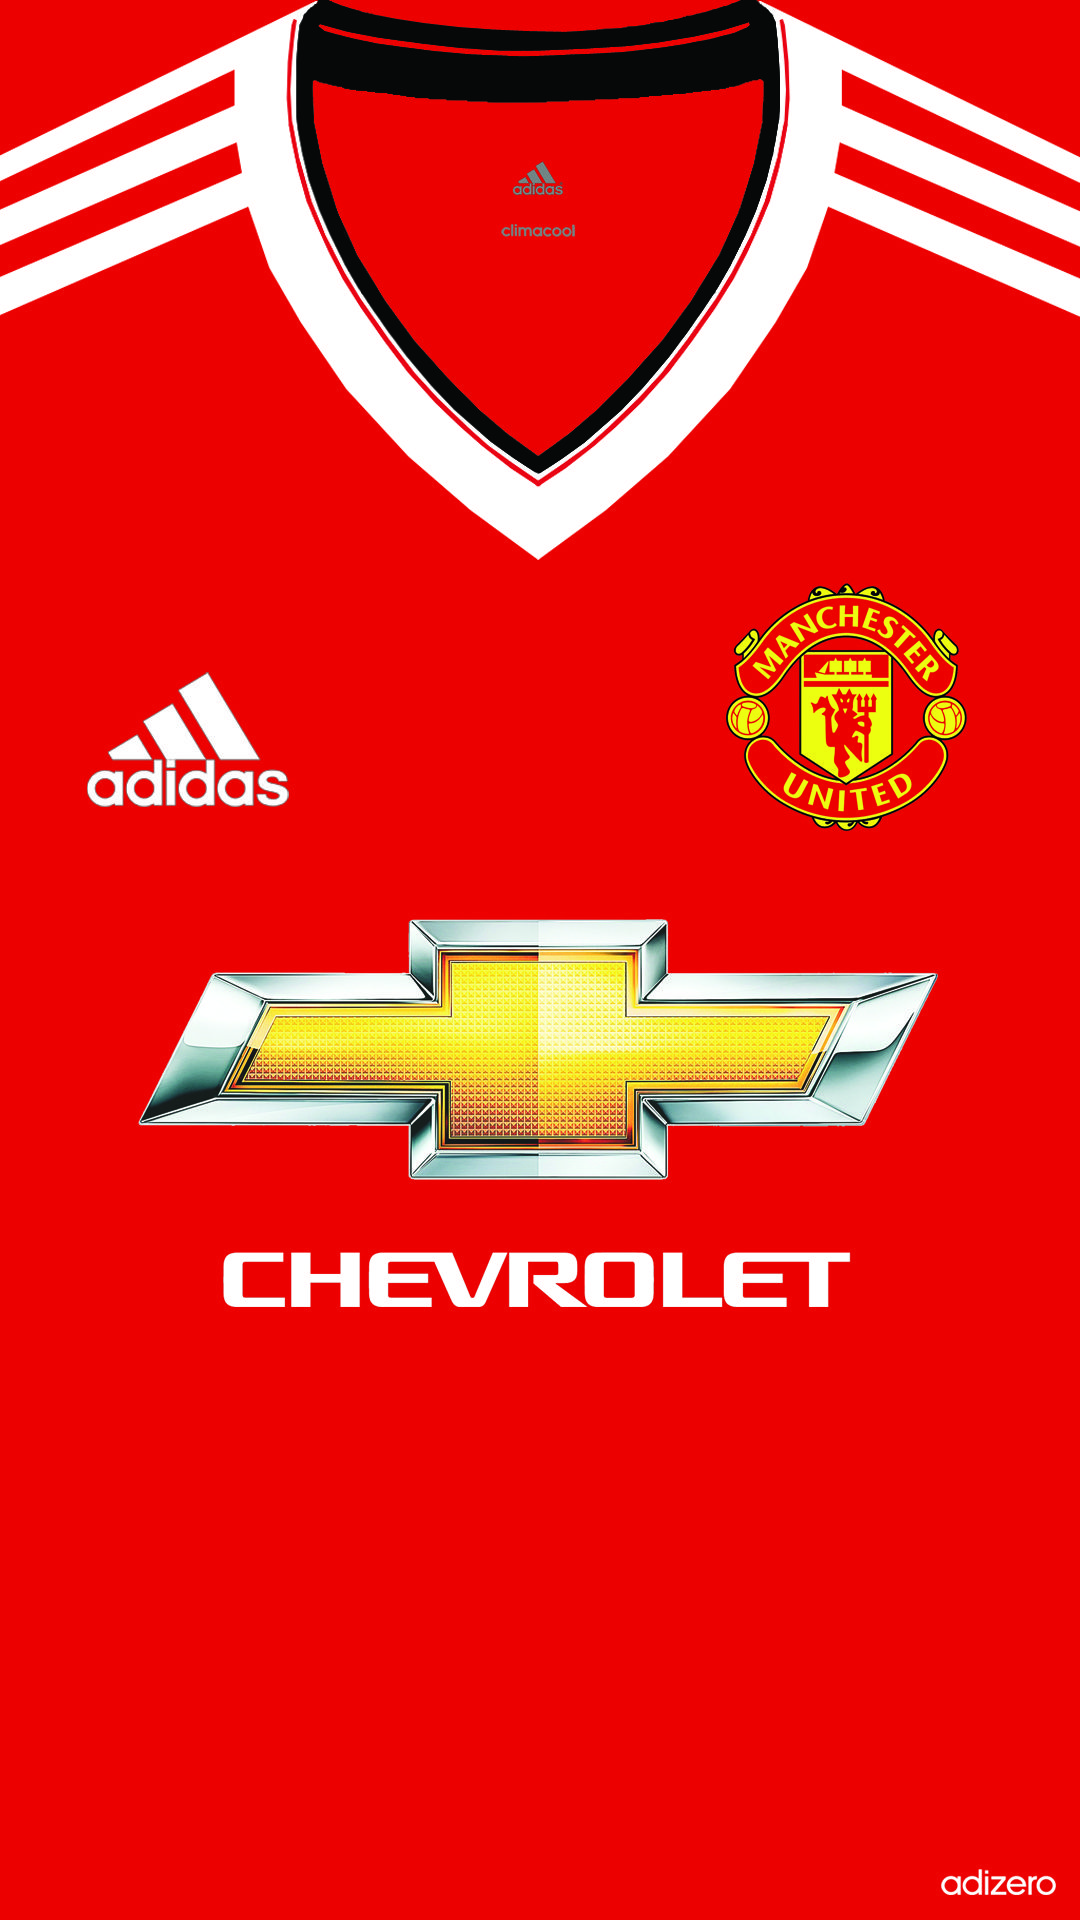 Manchester united home kit 201516 iphone 5 5s 6 wallpaper iphone manchester united home kit 201516 iphone 5 5s 6 wallpaper voltagebd